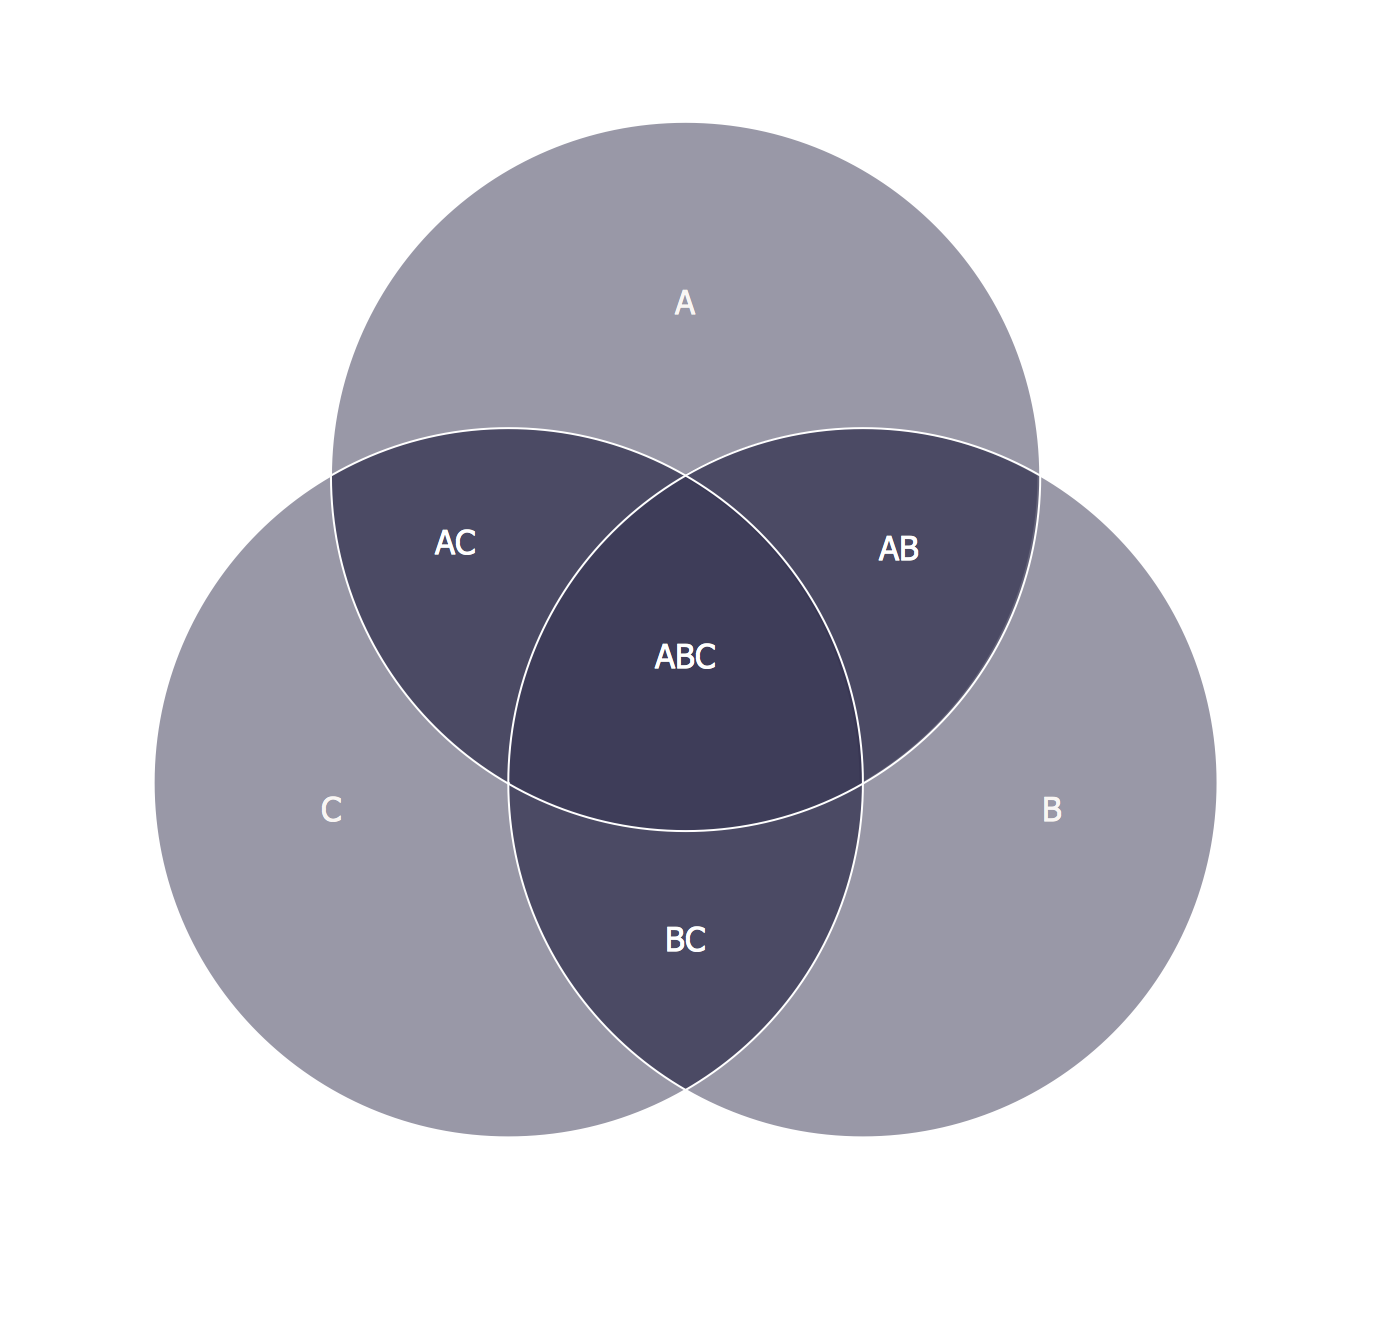 circle venn diagram  venn diagram template  venn    s construction    venn diagram example   circle venn